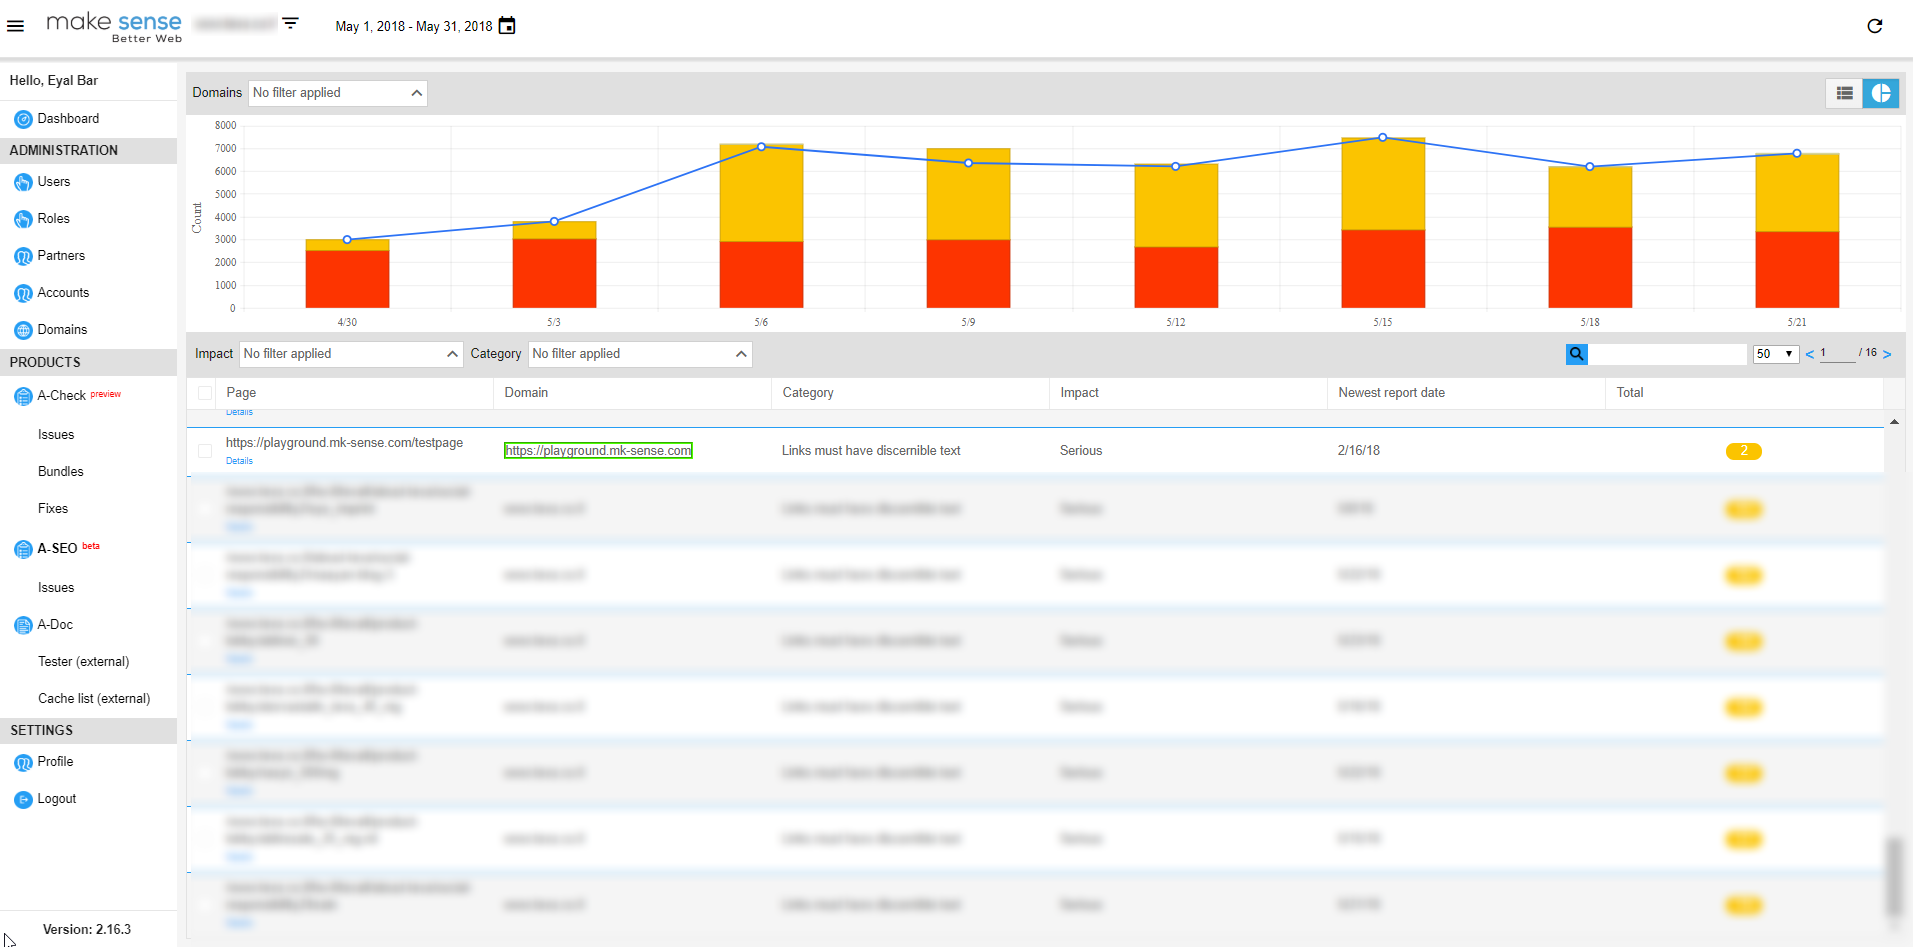 Image of the SEO dashboard. showing SEO summary by specific filters.